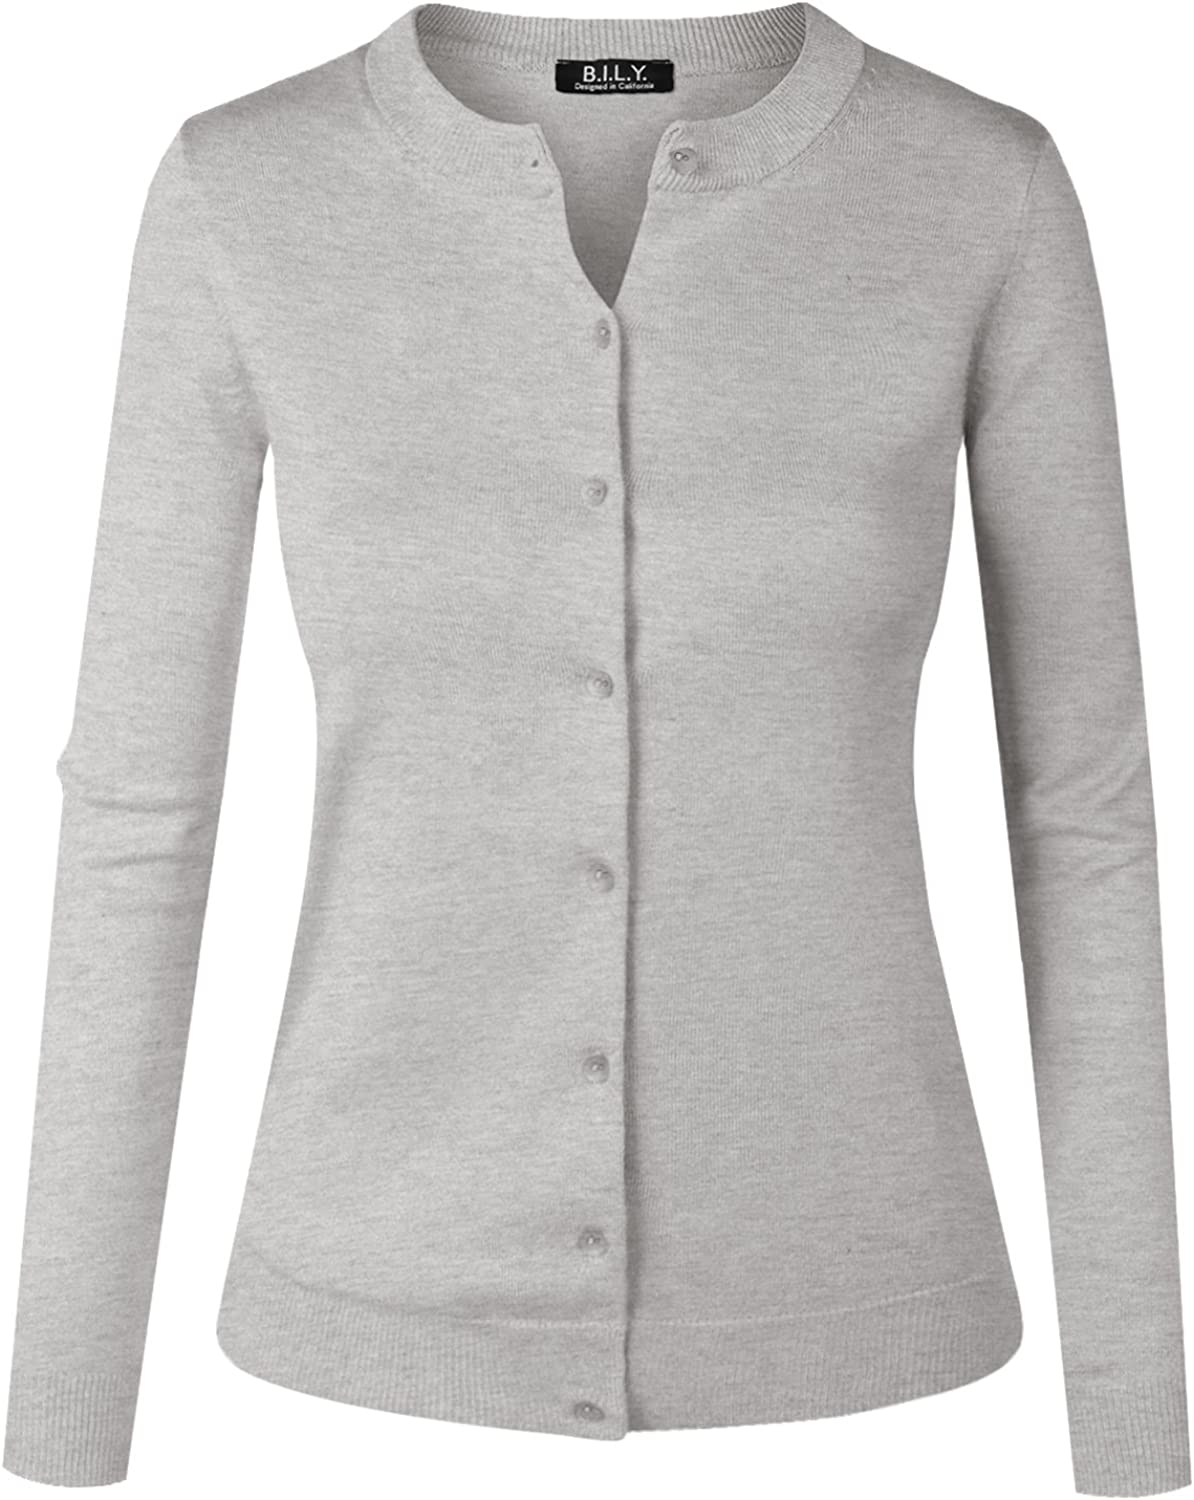 BH B.I.L.Y USA Women's Unique Button Long Sleeve Soft Knit Cardigan Sweater Heather Grey XXLarge